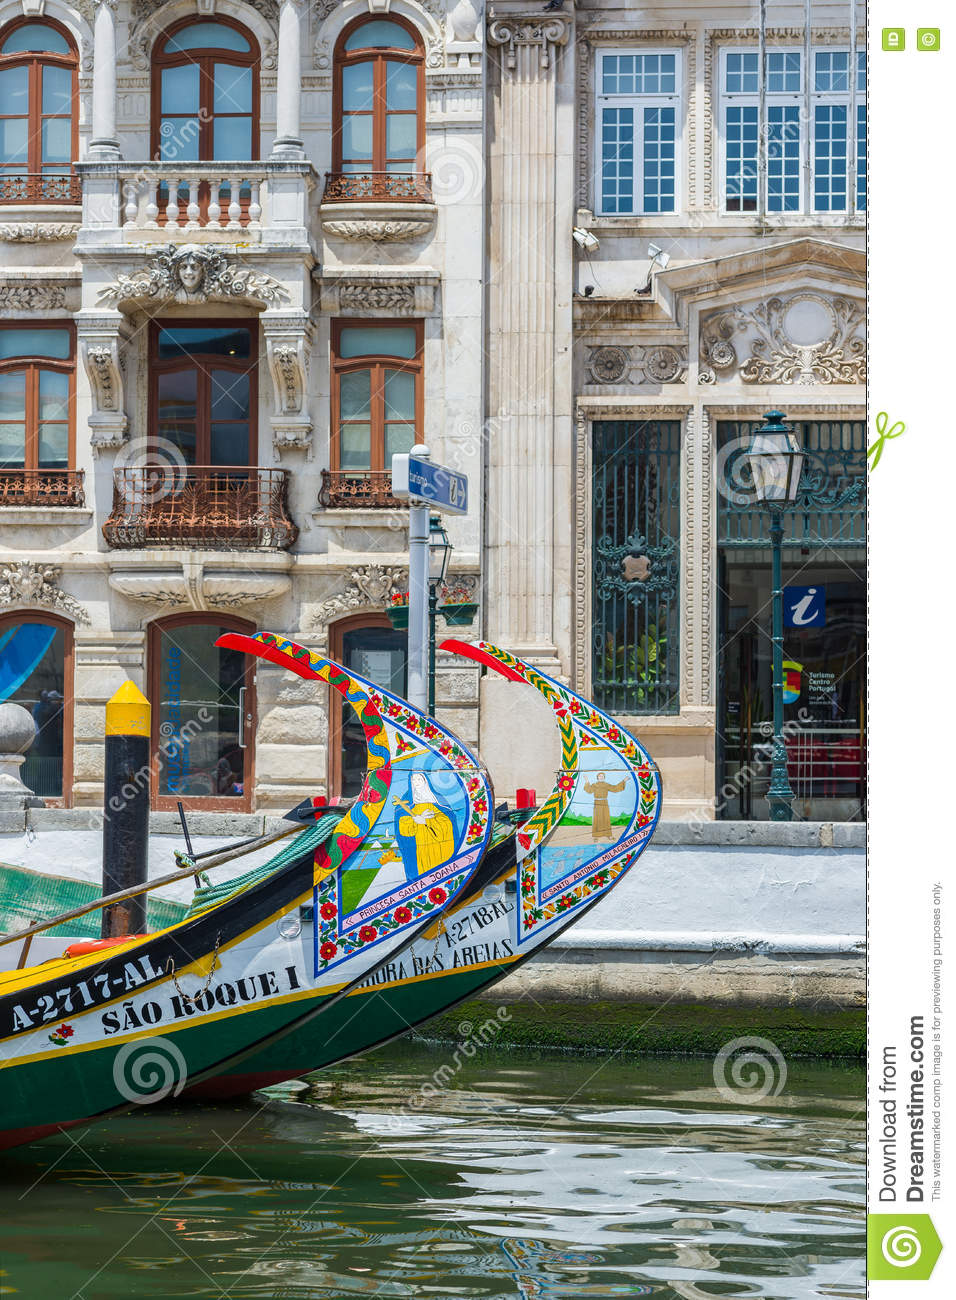 Typical Moliceiro boat of Aveiro. Portugal.